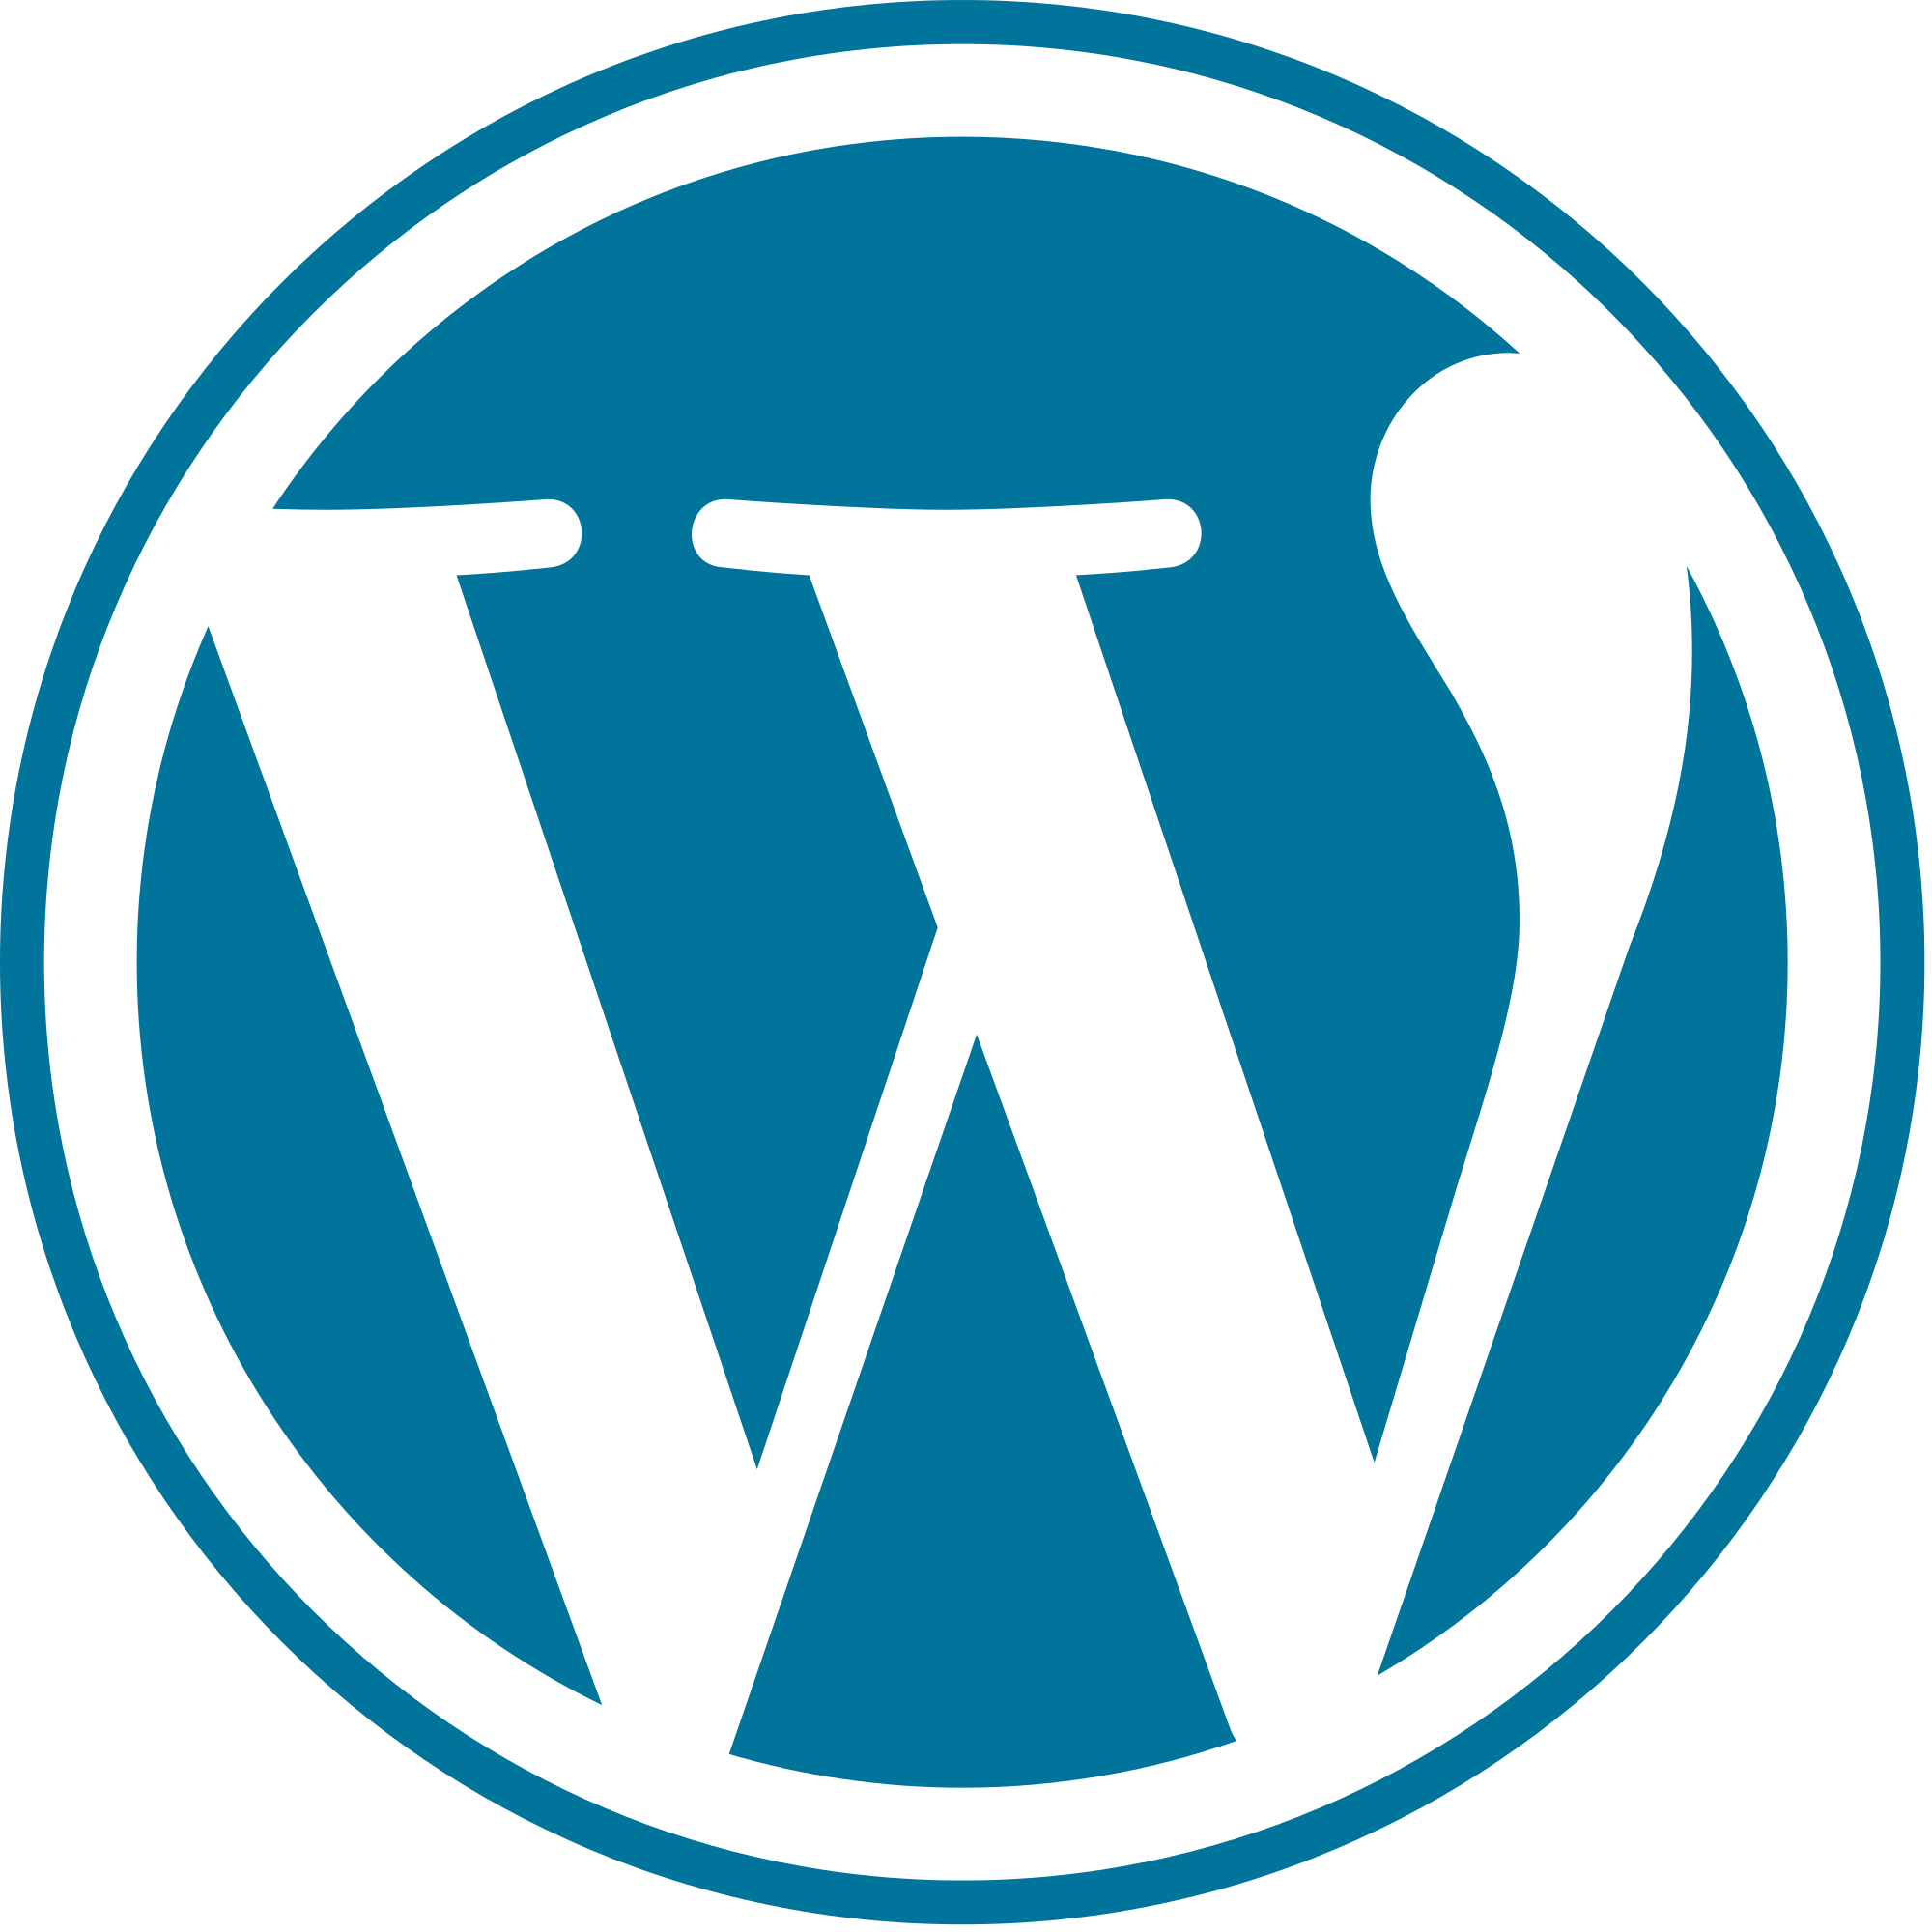 Secure Wordpress Hosting How To Achieve It